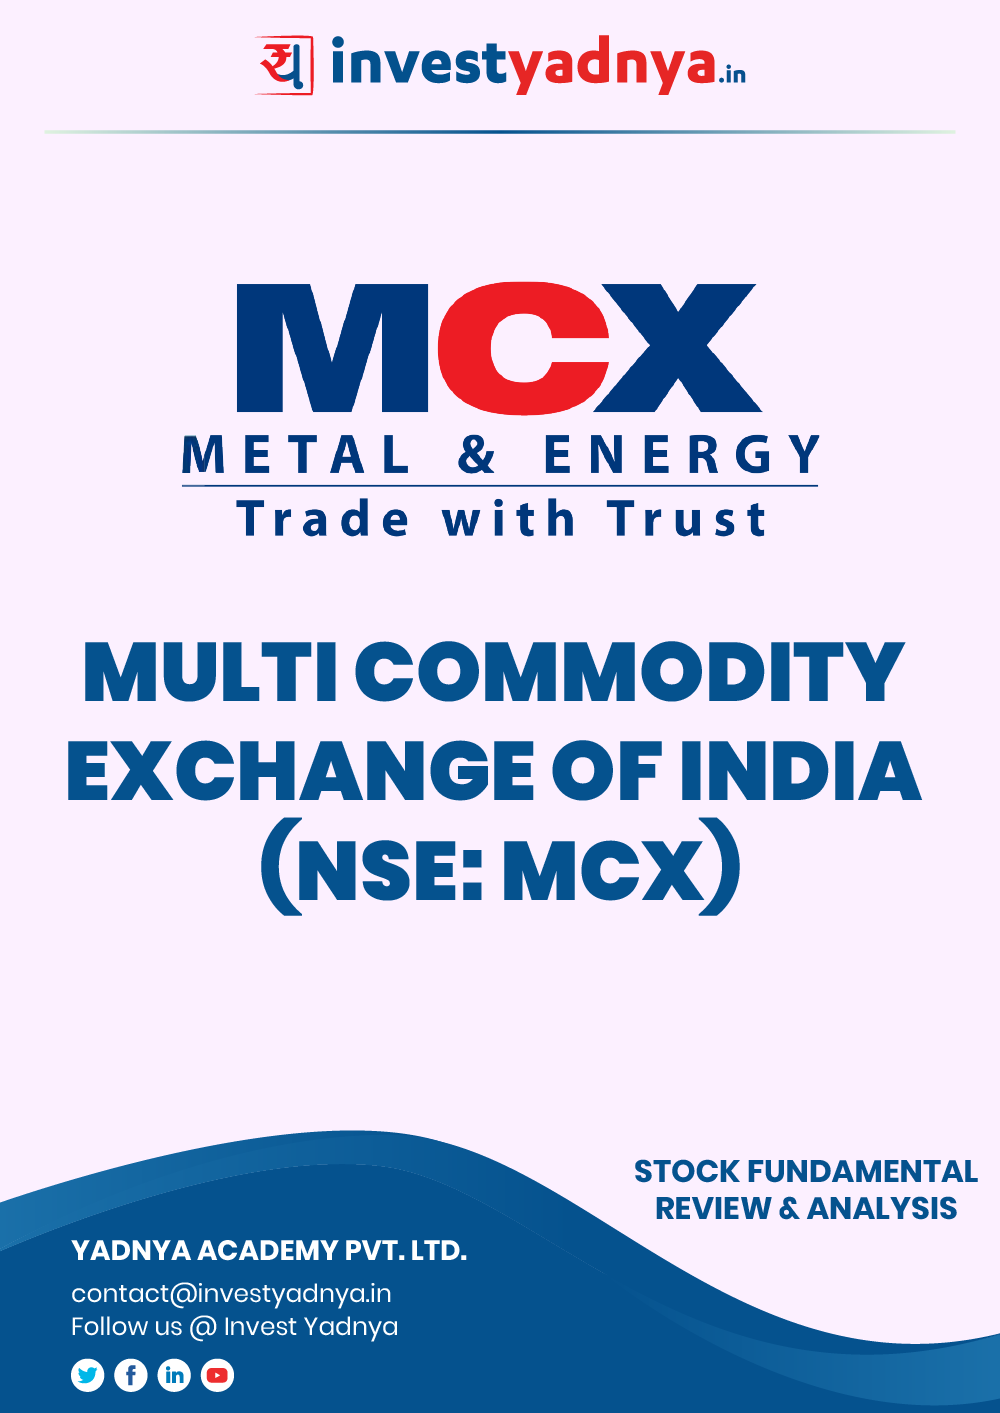 This e-book contains in-depth fundamental analysis of Multi Commodity Exchange of India (MCX) considering both Financial and Equity Research Parameters. It reviews the company, industry competitors, governance, financials, and valuations. ✔ Detailed Research ✔ Quality Reports